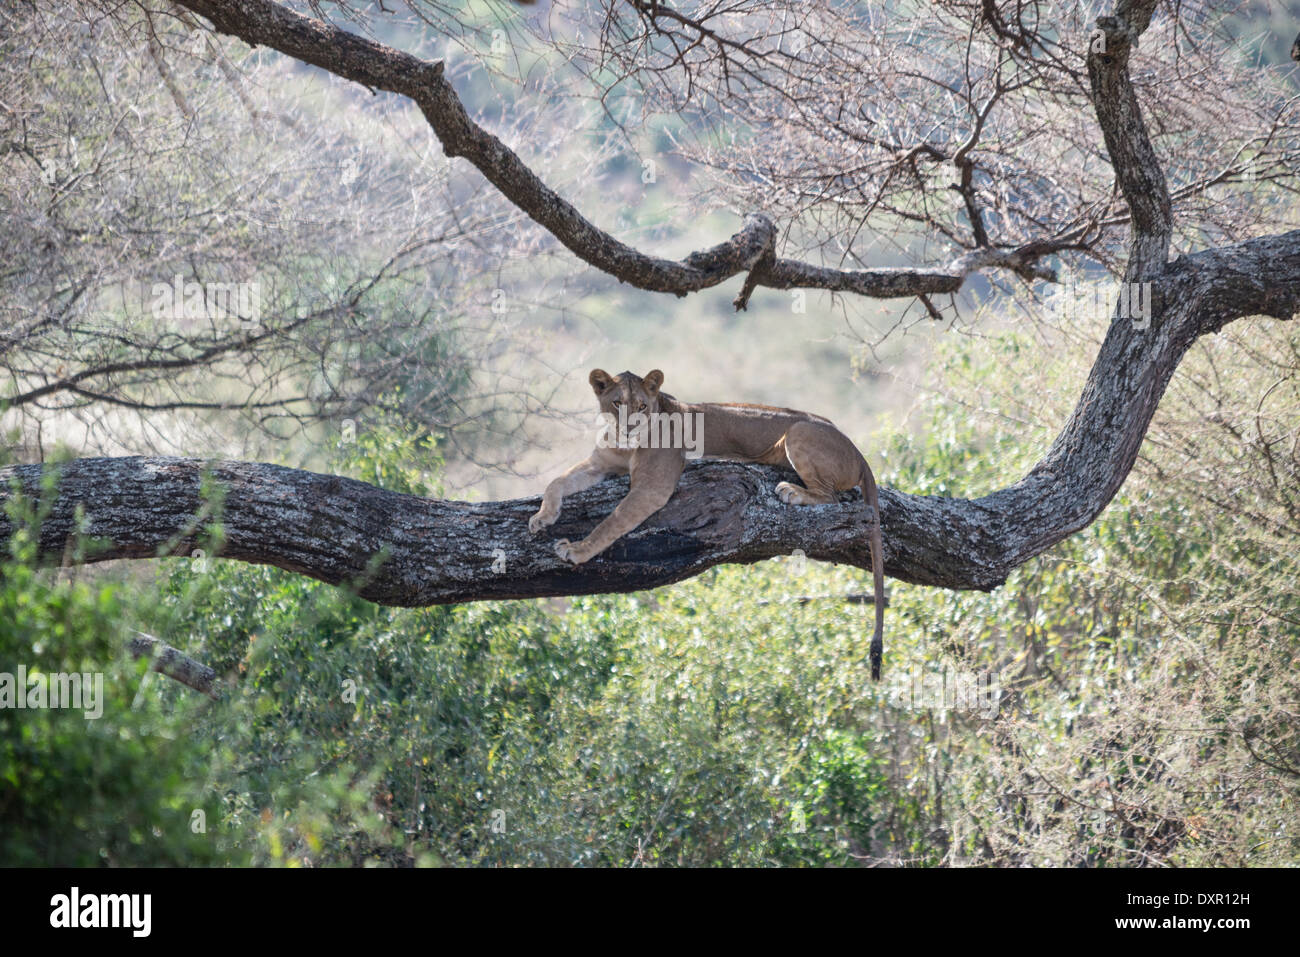 A lioness rests on a large branch of a tree in Lake Manyara National Park, Tanzania - Stock Image